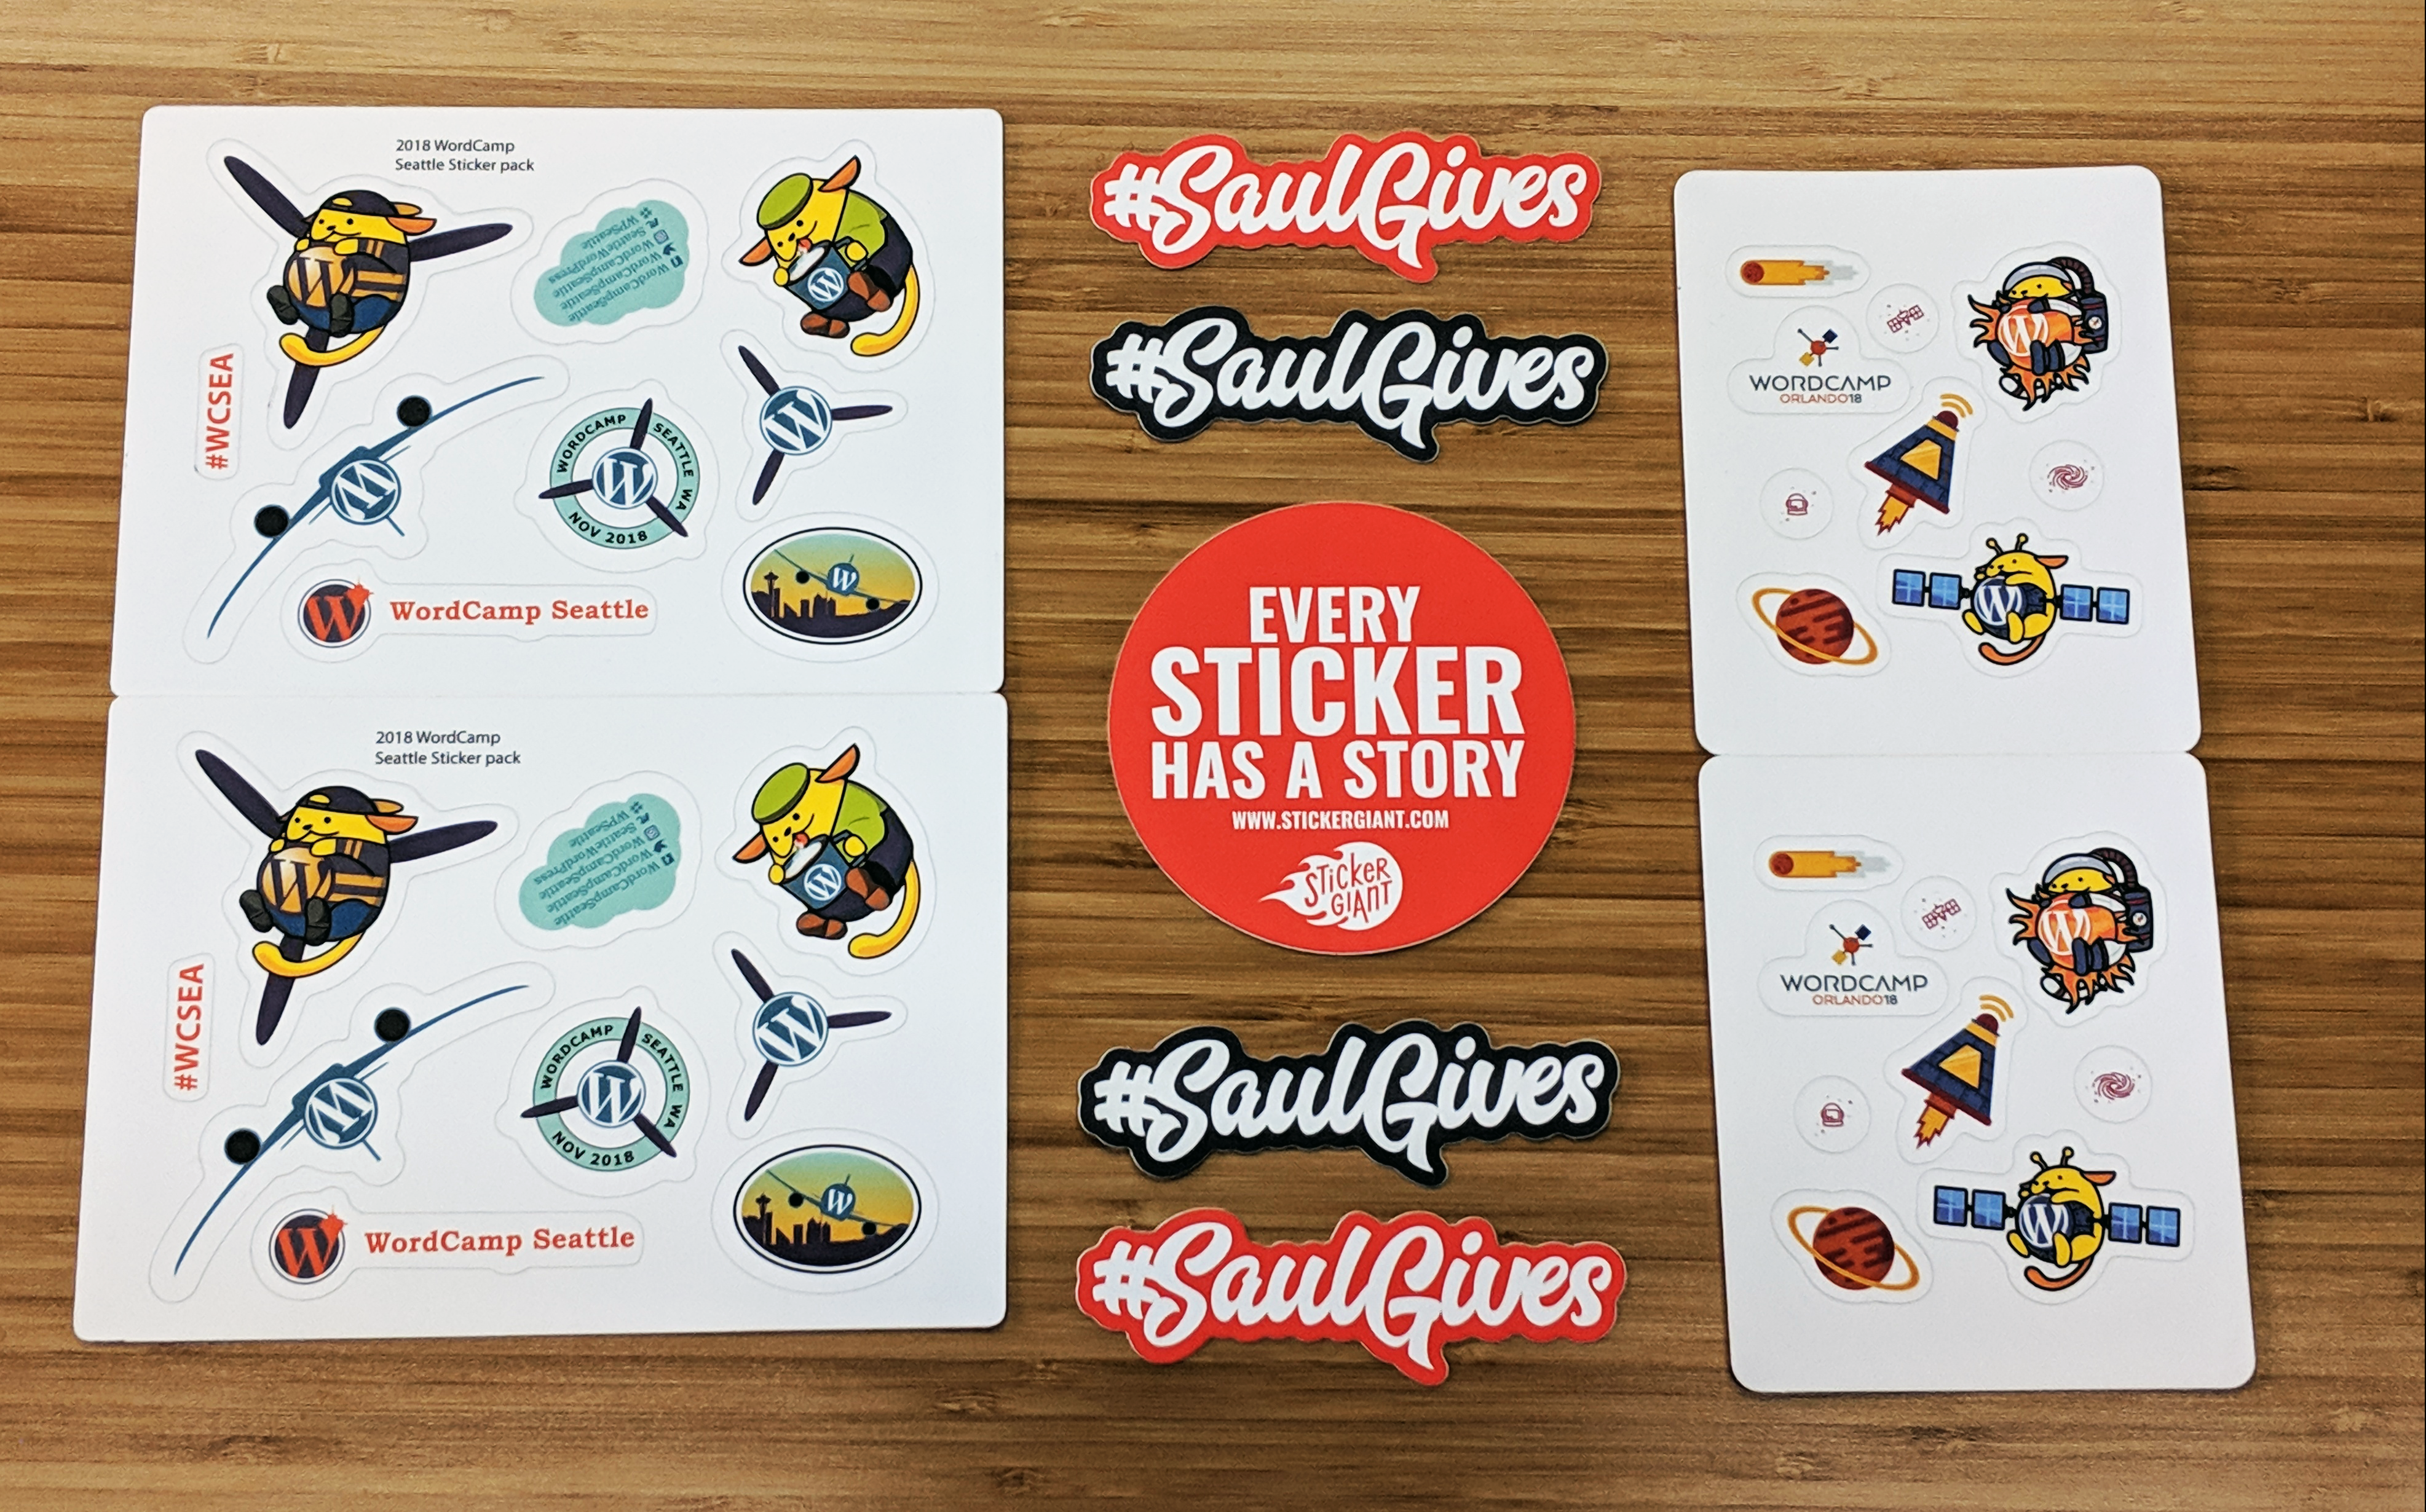 Wordcamp orlando blasts off with astronaut wapuu sticker sheets while wordcamp seattle takes flight with an aeroplane wapuu both of these event stickers